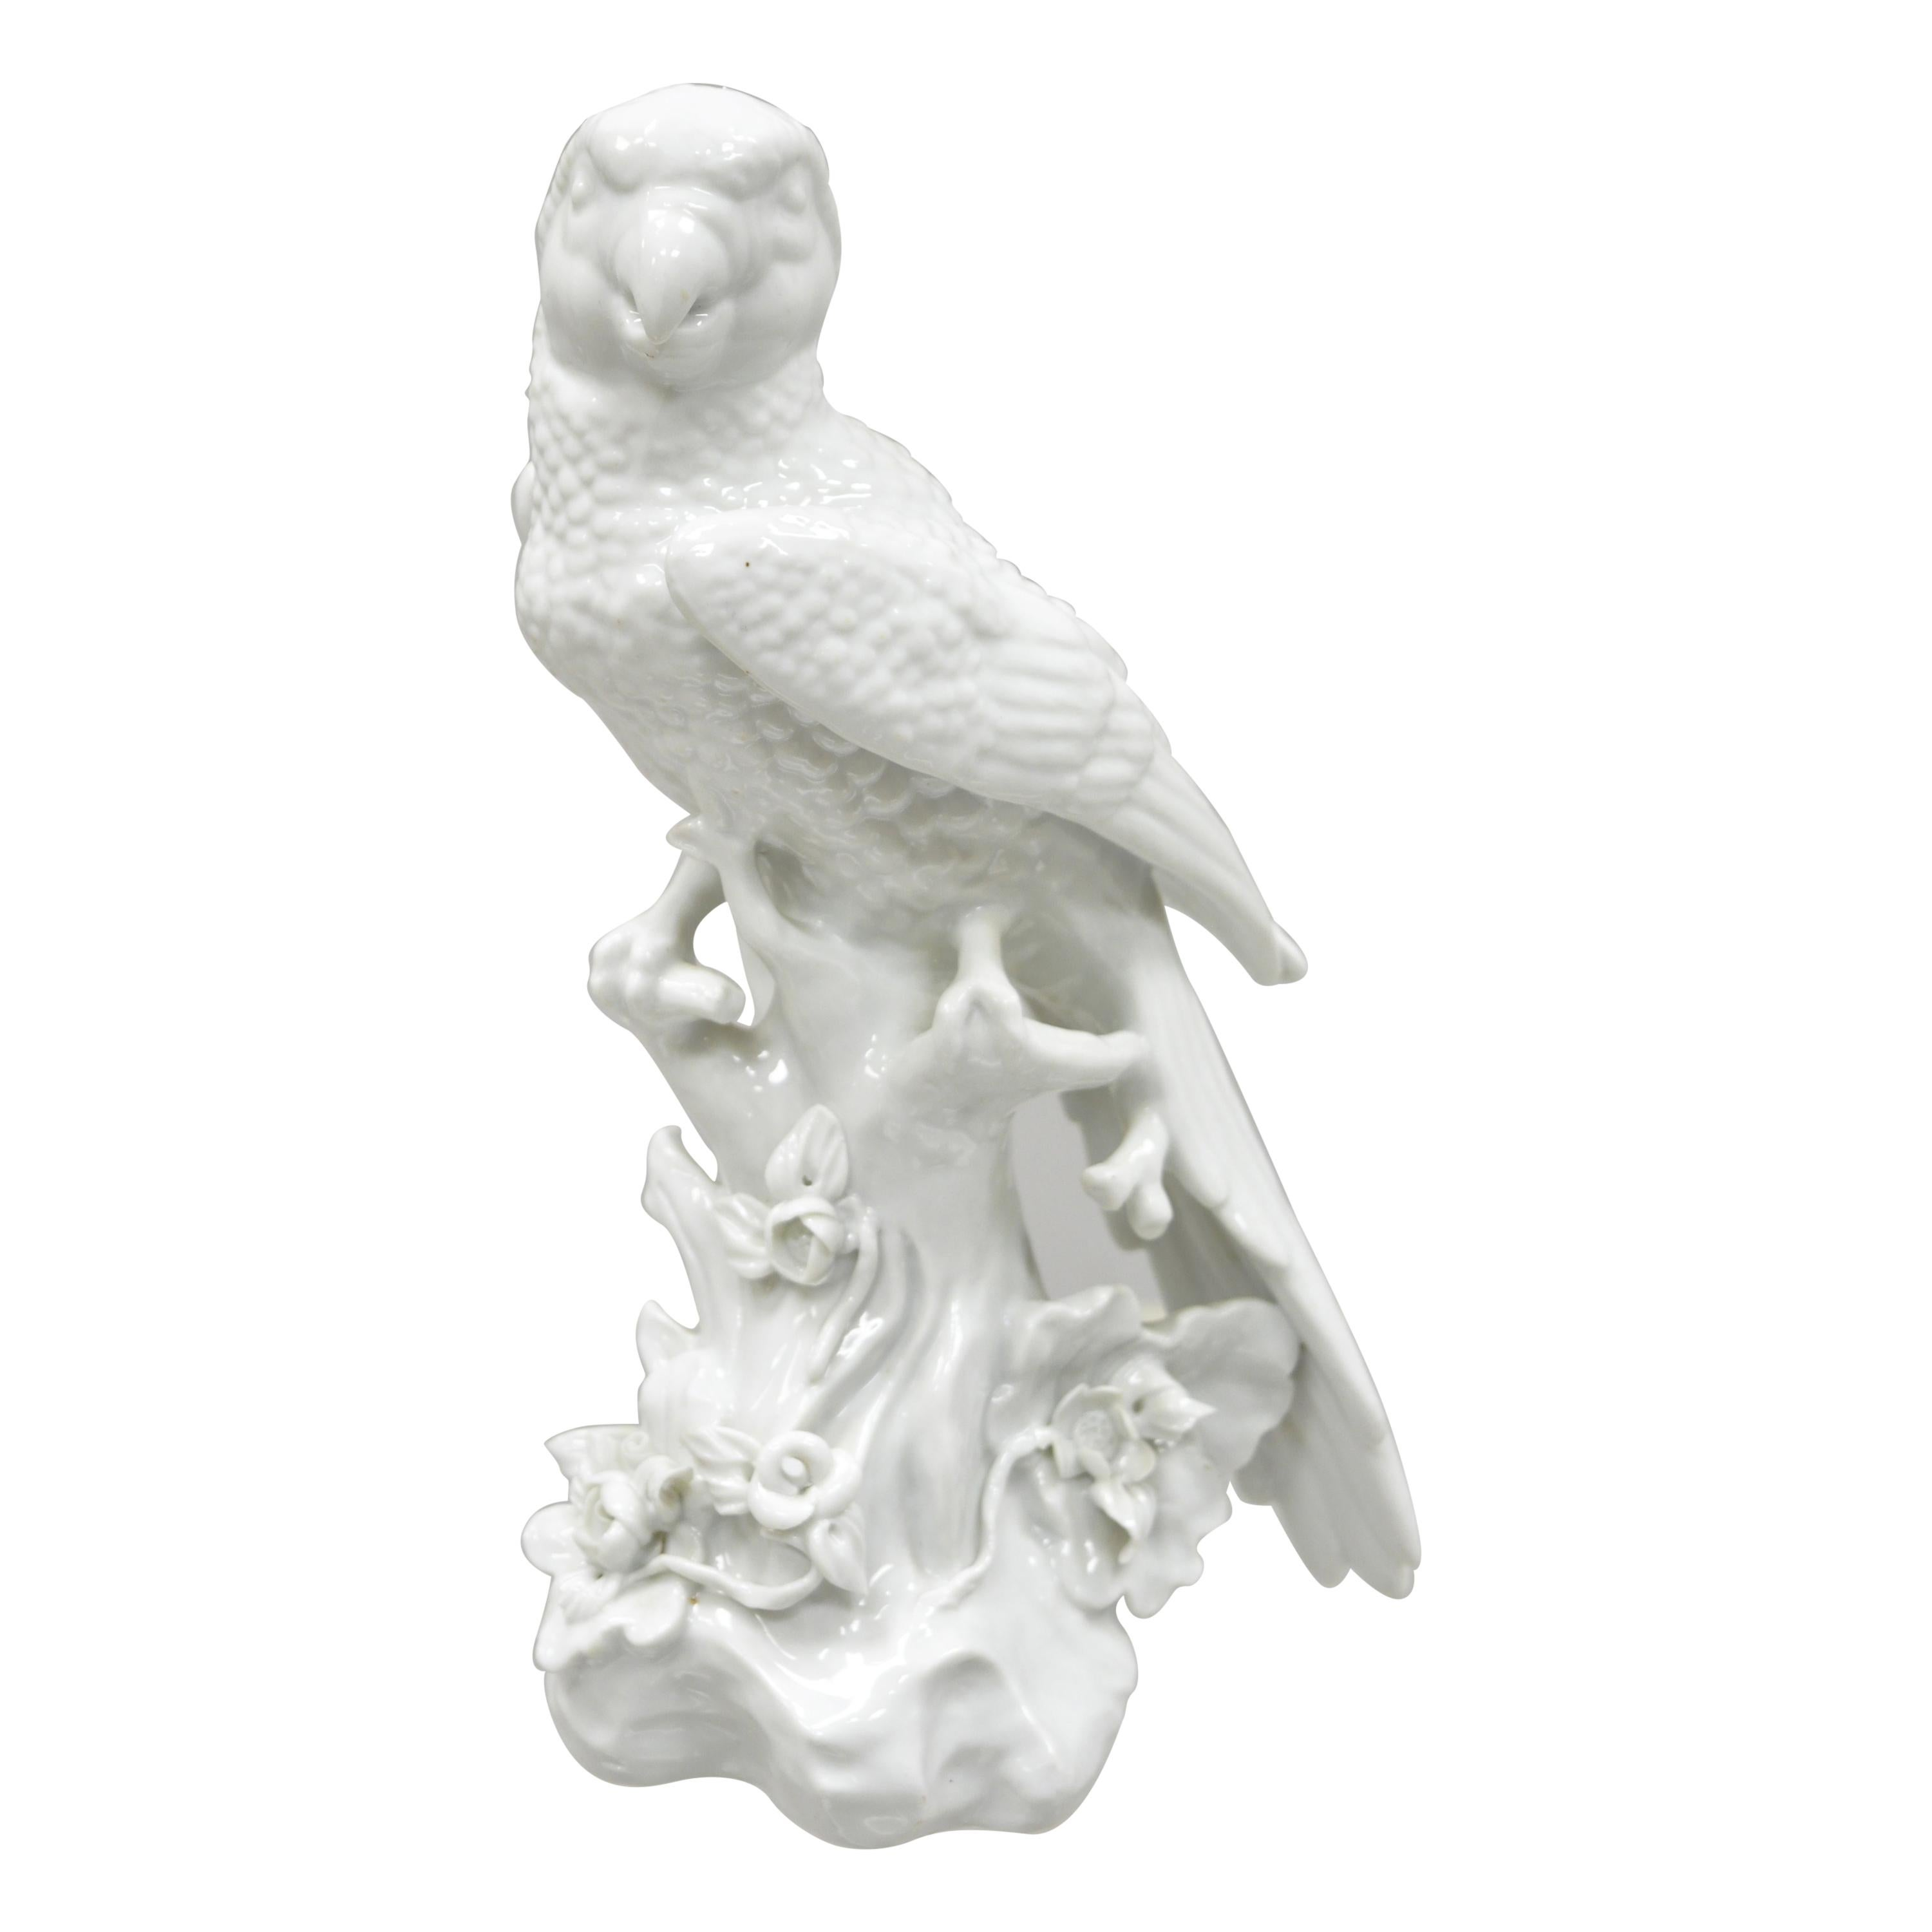 White Porcelain Parrot Figure Statue 5 Point Crown N Capodimonte or German